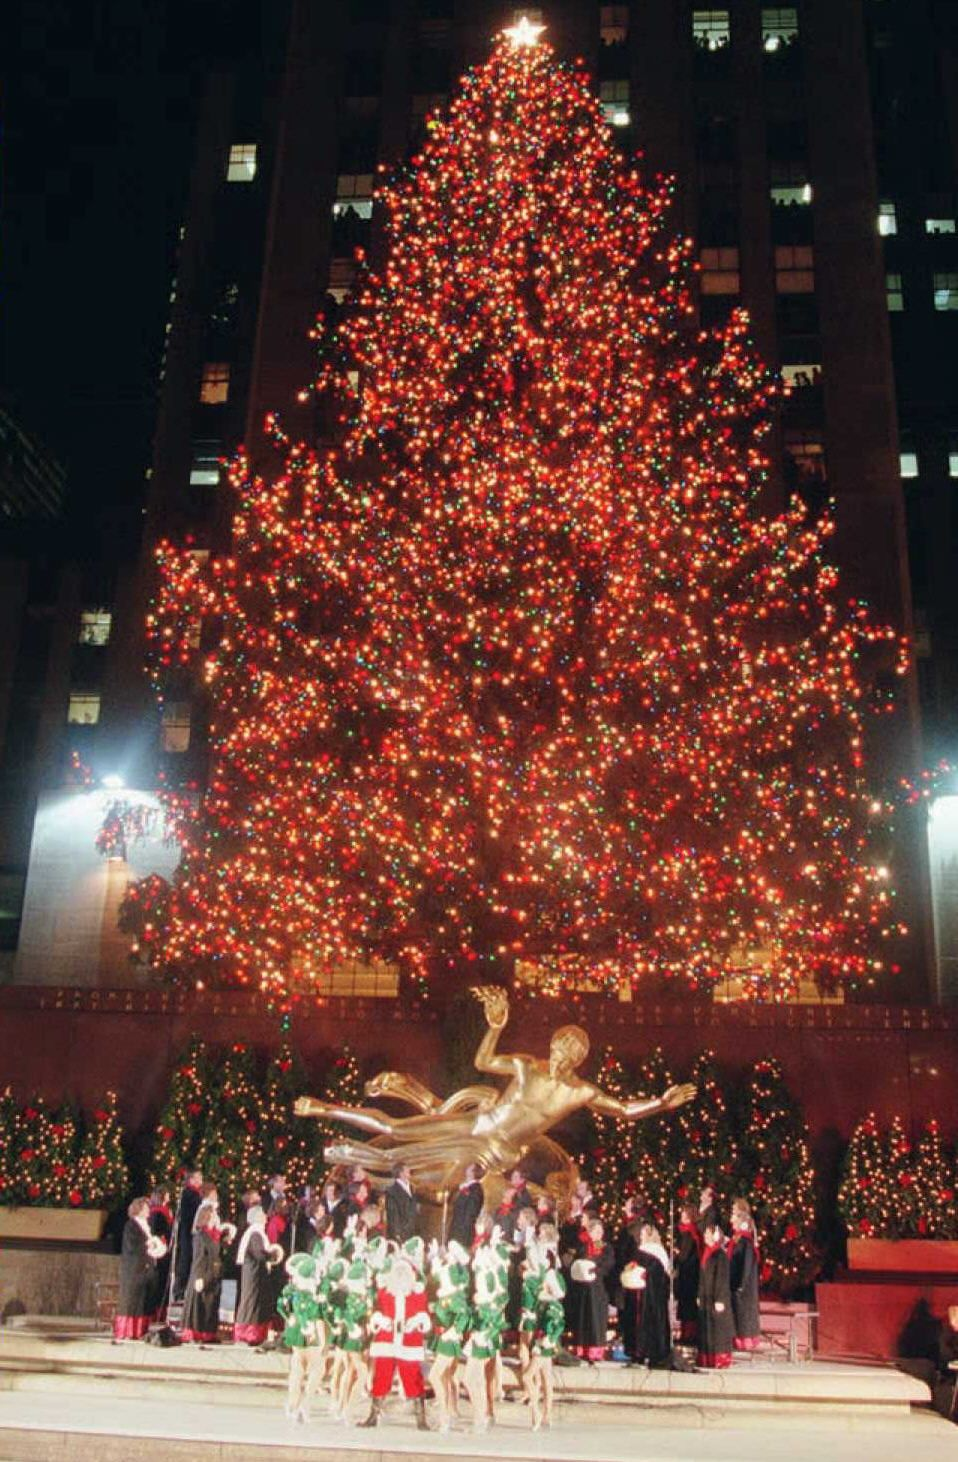 The Rockefeller Center Christmas Tree is officially lit